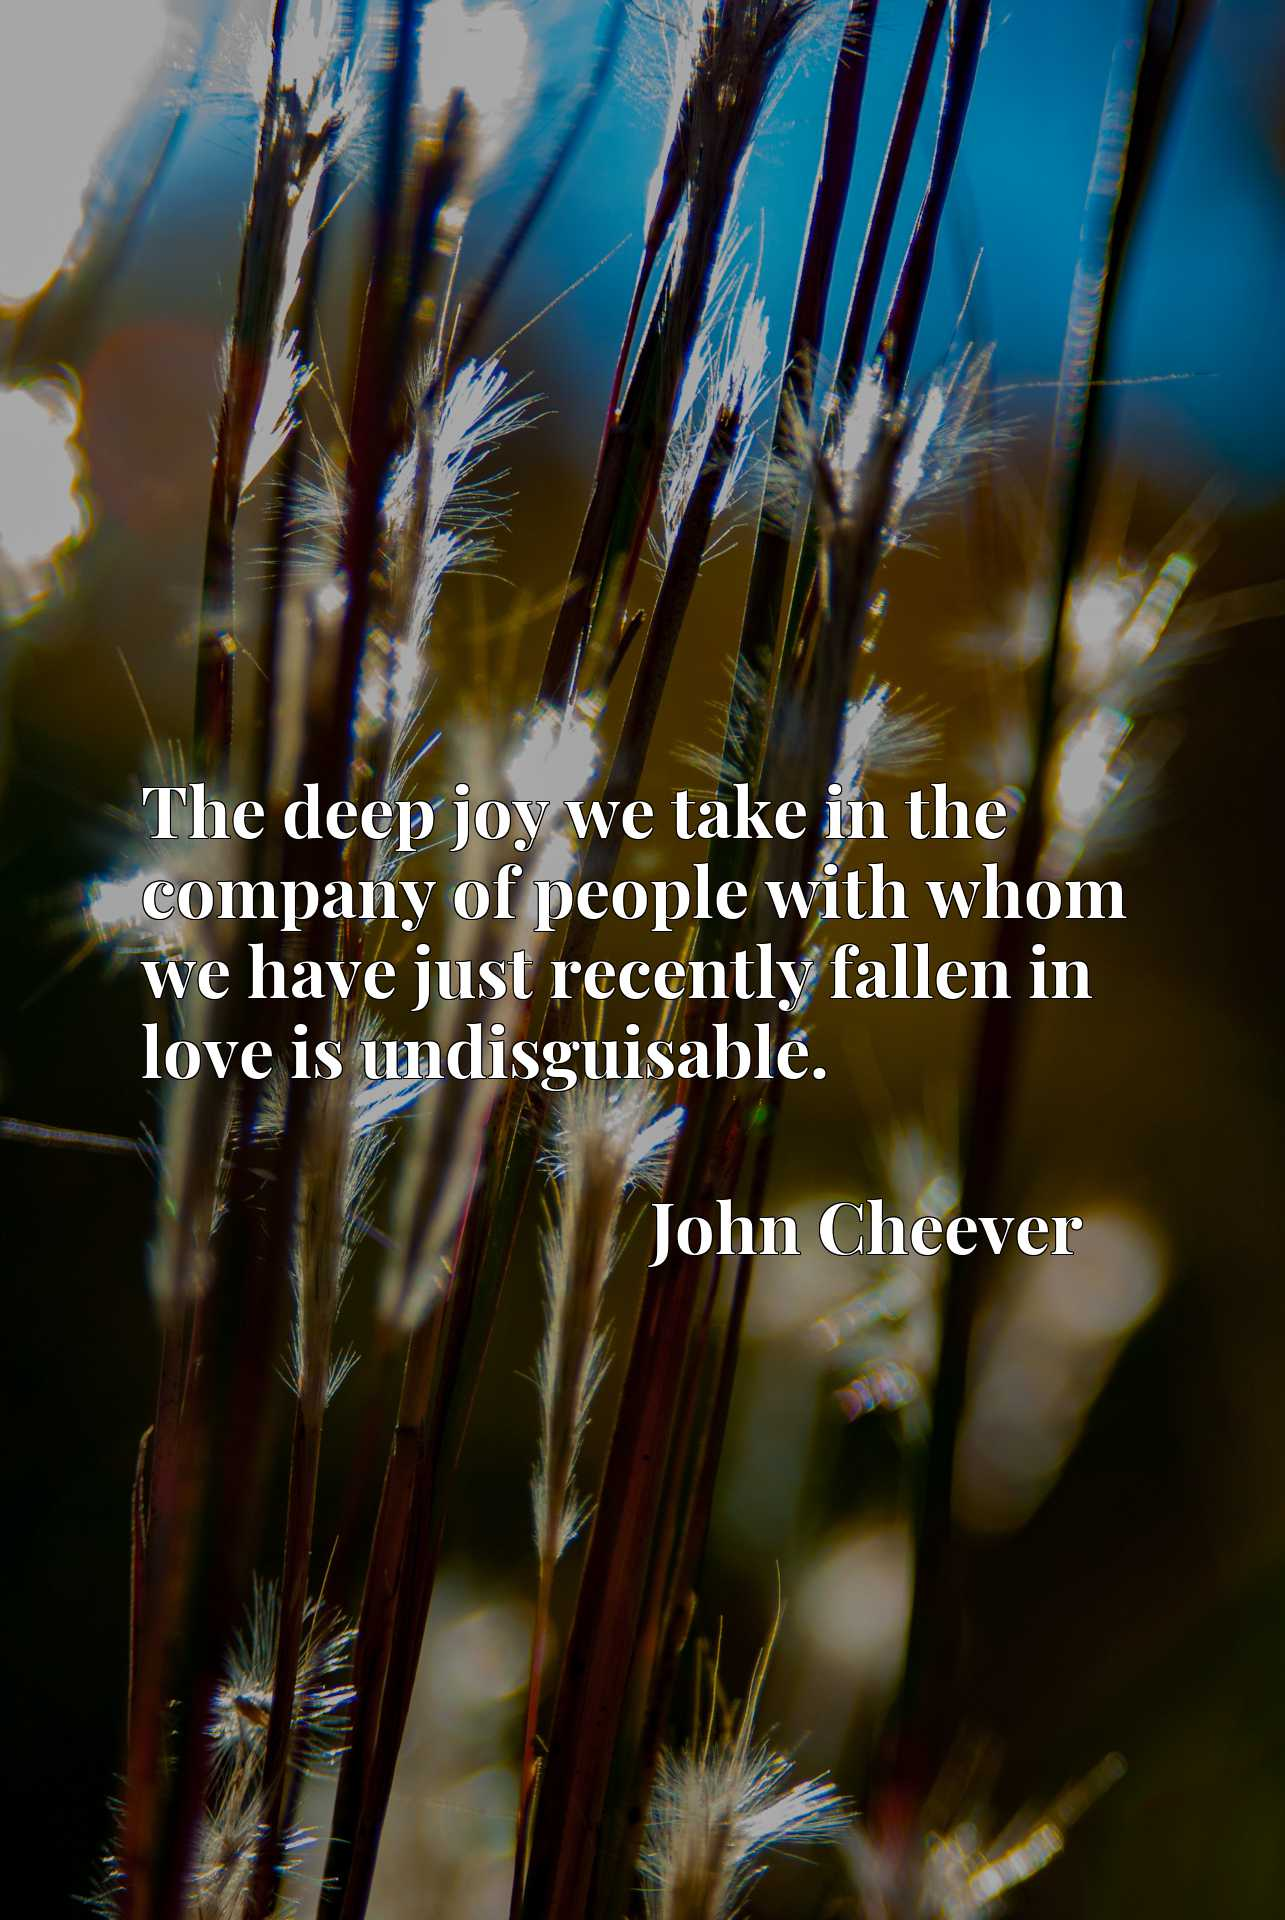 Quote Picture :The deep joy we take in the company of people with whom we have just recently fallen in love is undisguisable.